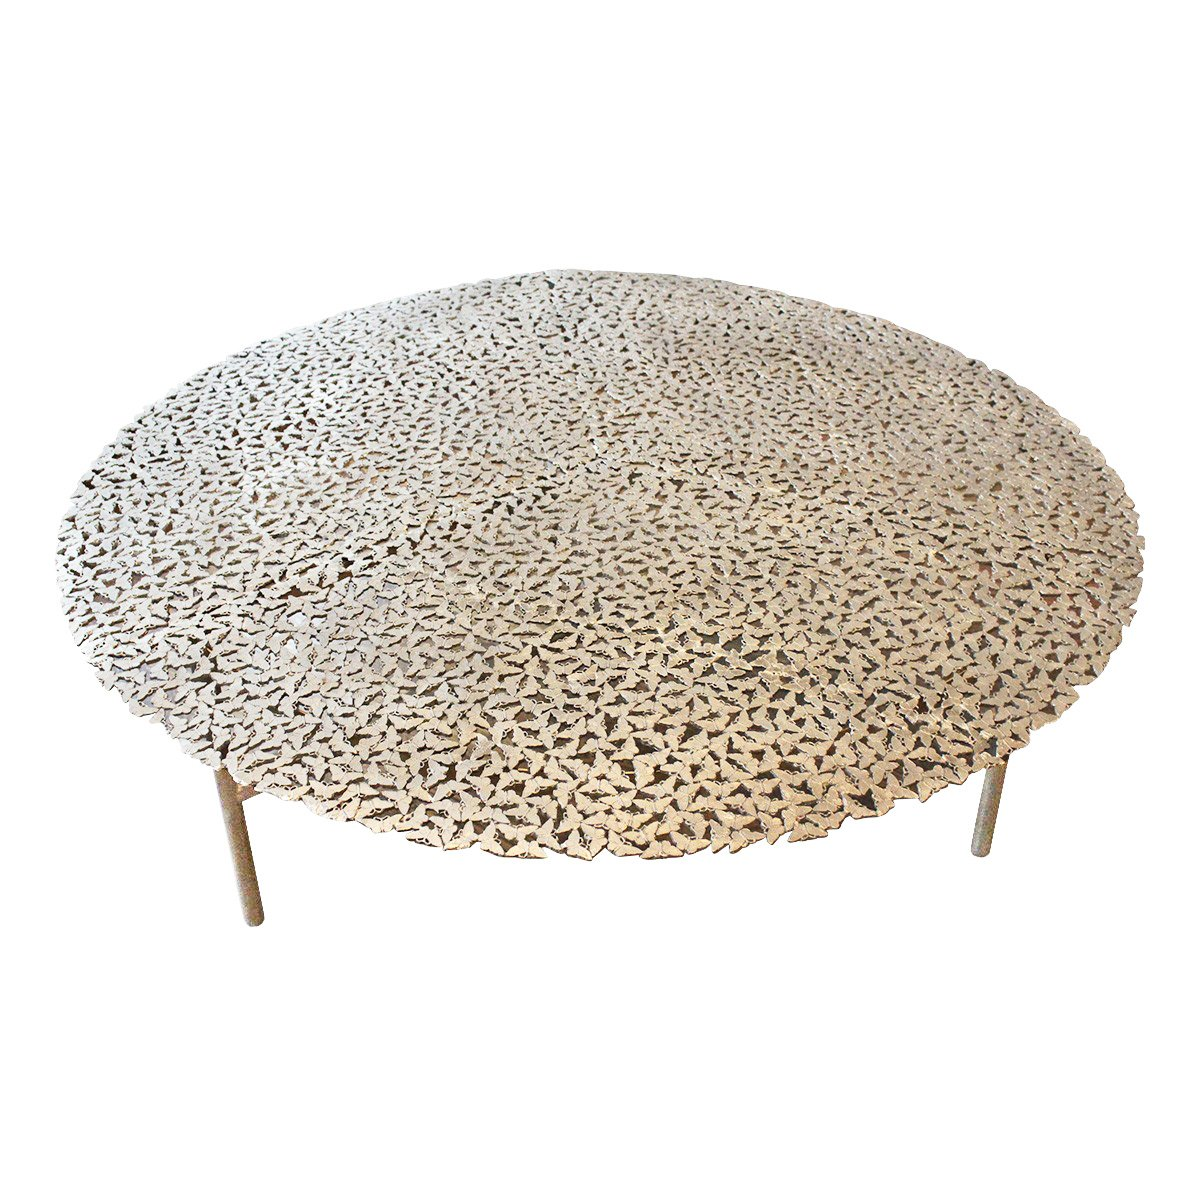 Jean Cast Butterfly Indoor Or Outdoor Coffee Table In White Bronze By Fred Juul For Sale At Pamono